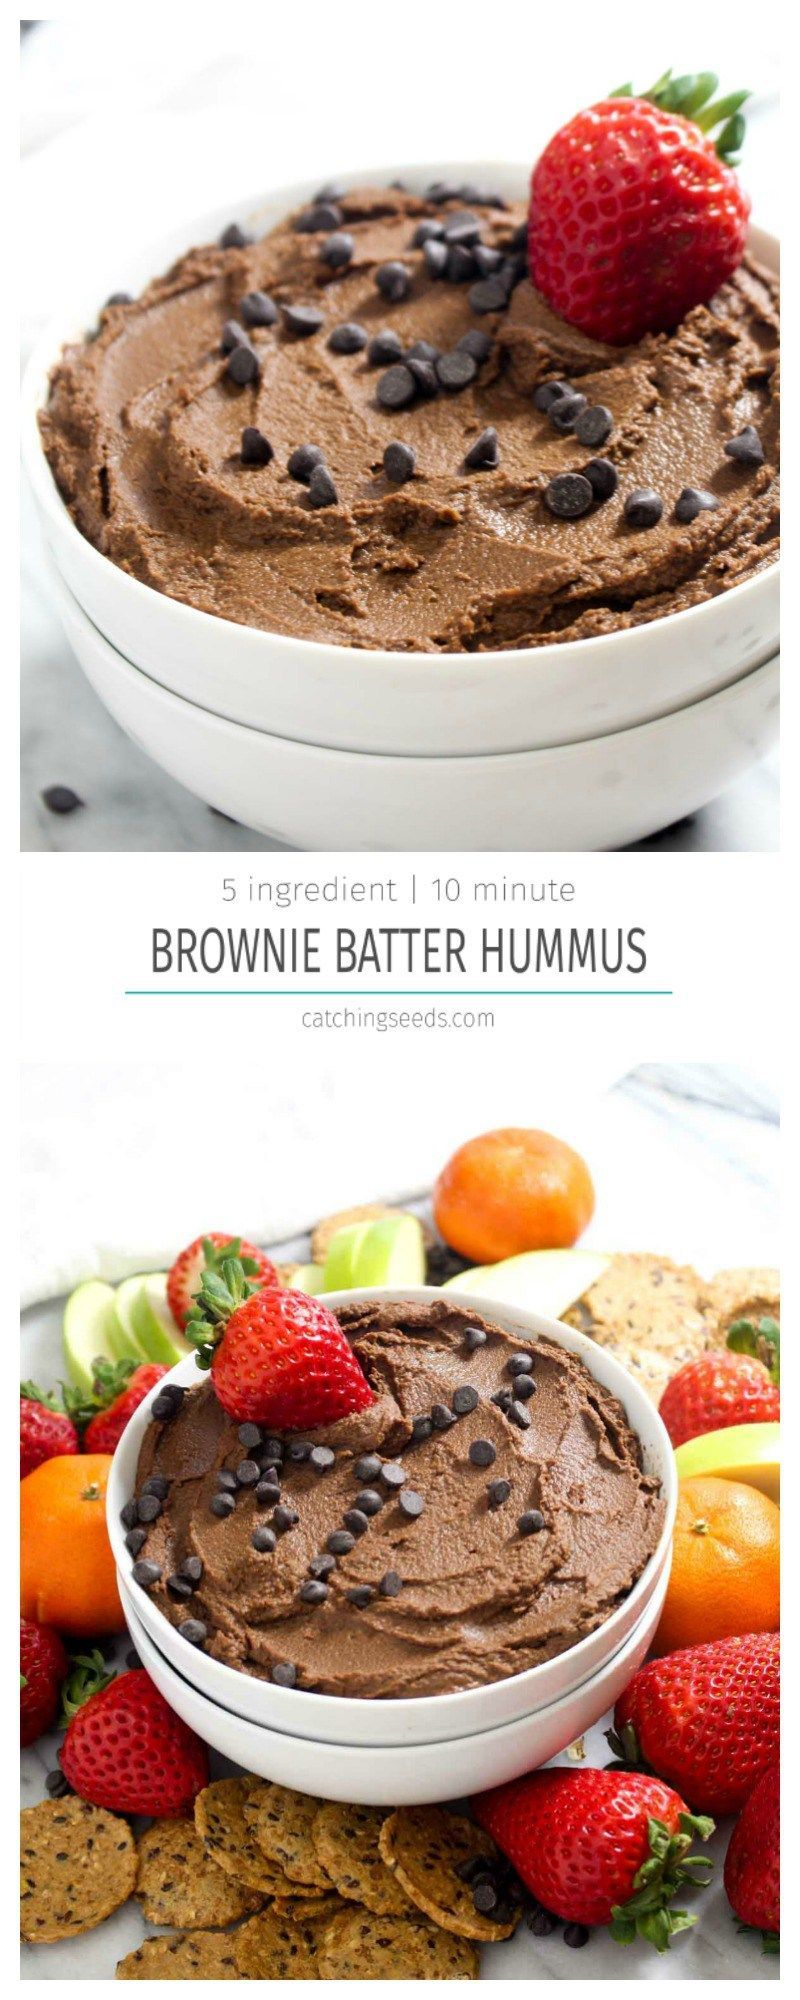 Brownie Batter Hummus This Chocolate Brownie Batter Hummus is the perfect healthy chocolate treat! This recipe requires just 5 everyday ingredients and can be made in 10 minutes with 1 simple step! |